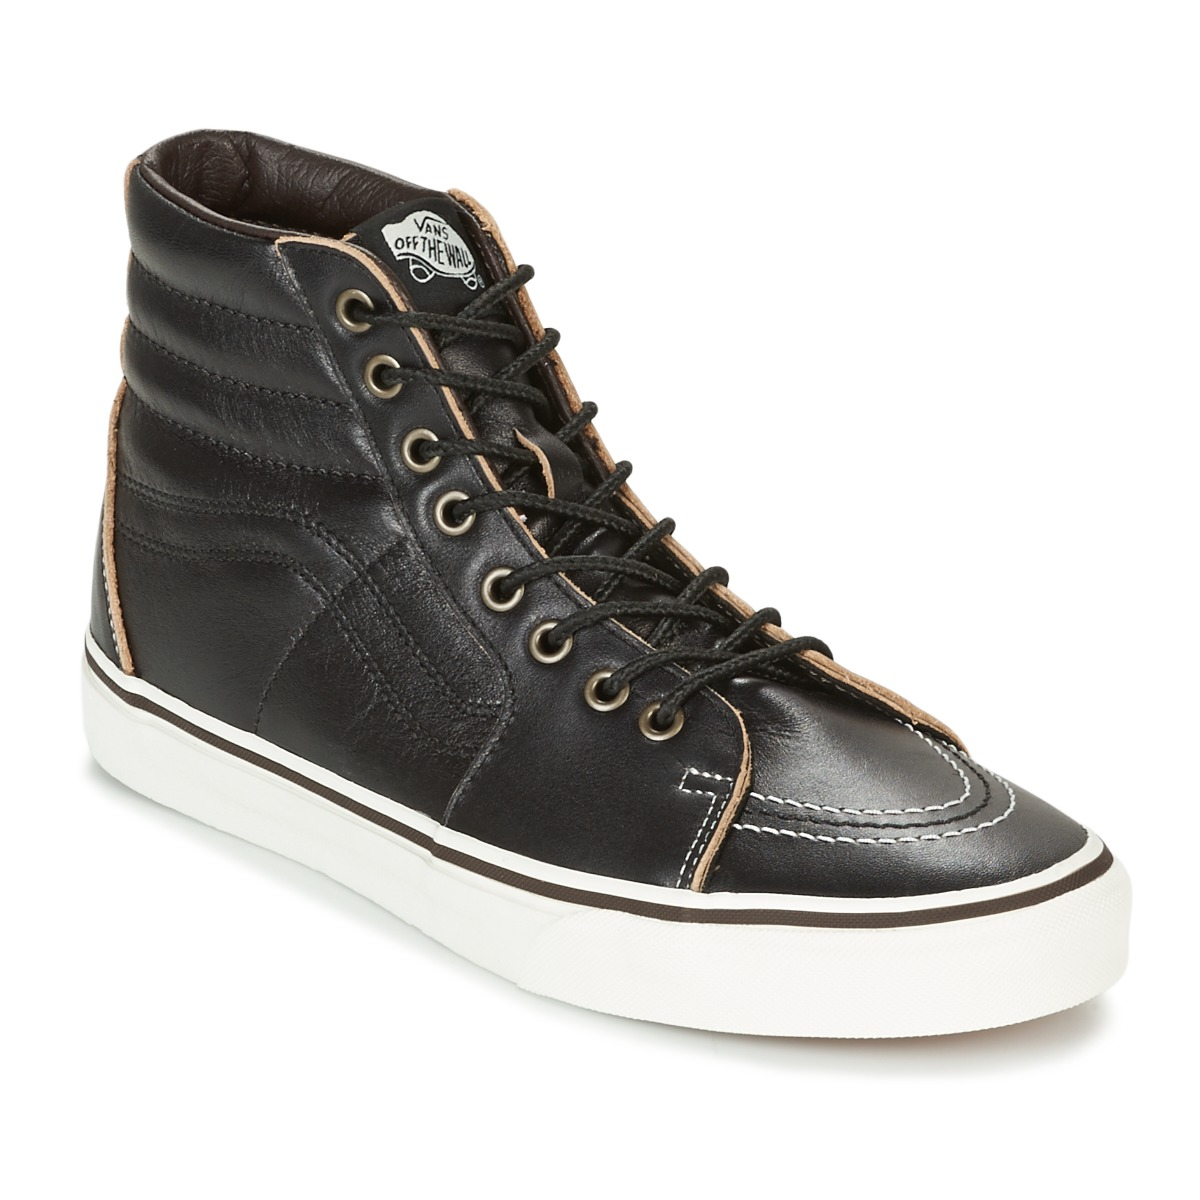 vans sk8 hi noir pas cher baskets homme spartoo ventes pas. Black Bedroom Furniture Sets. Home Design Ideas